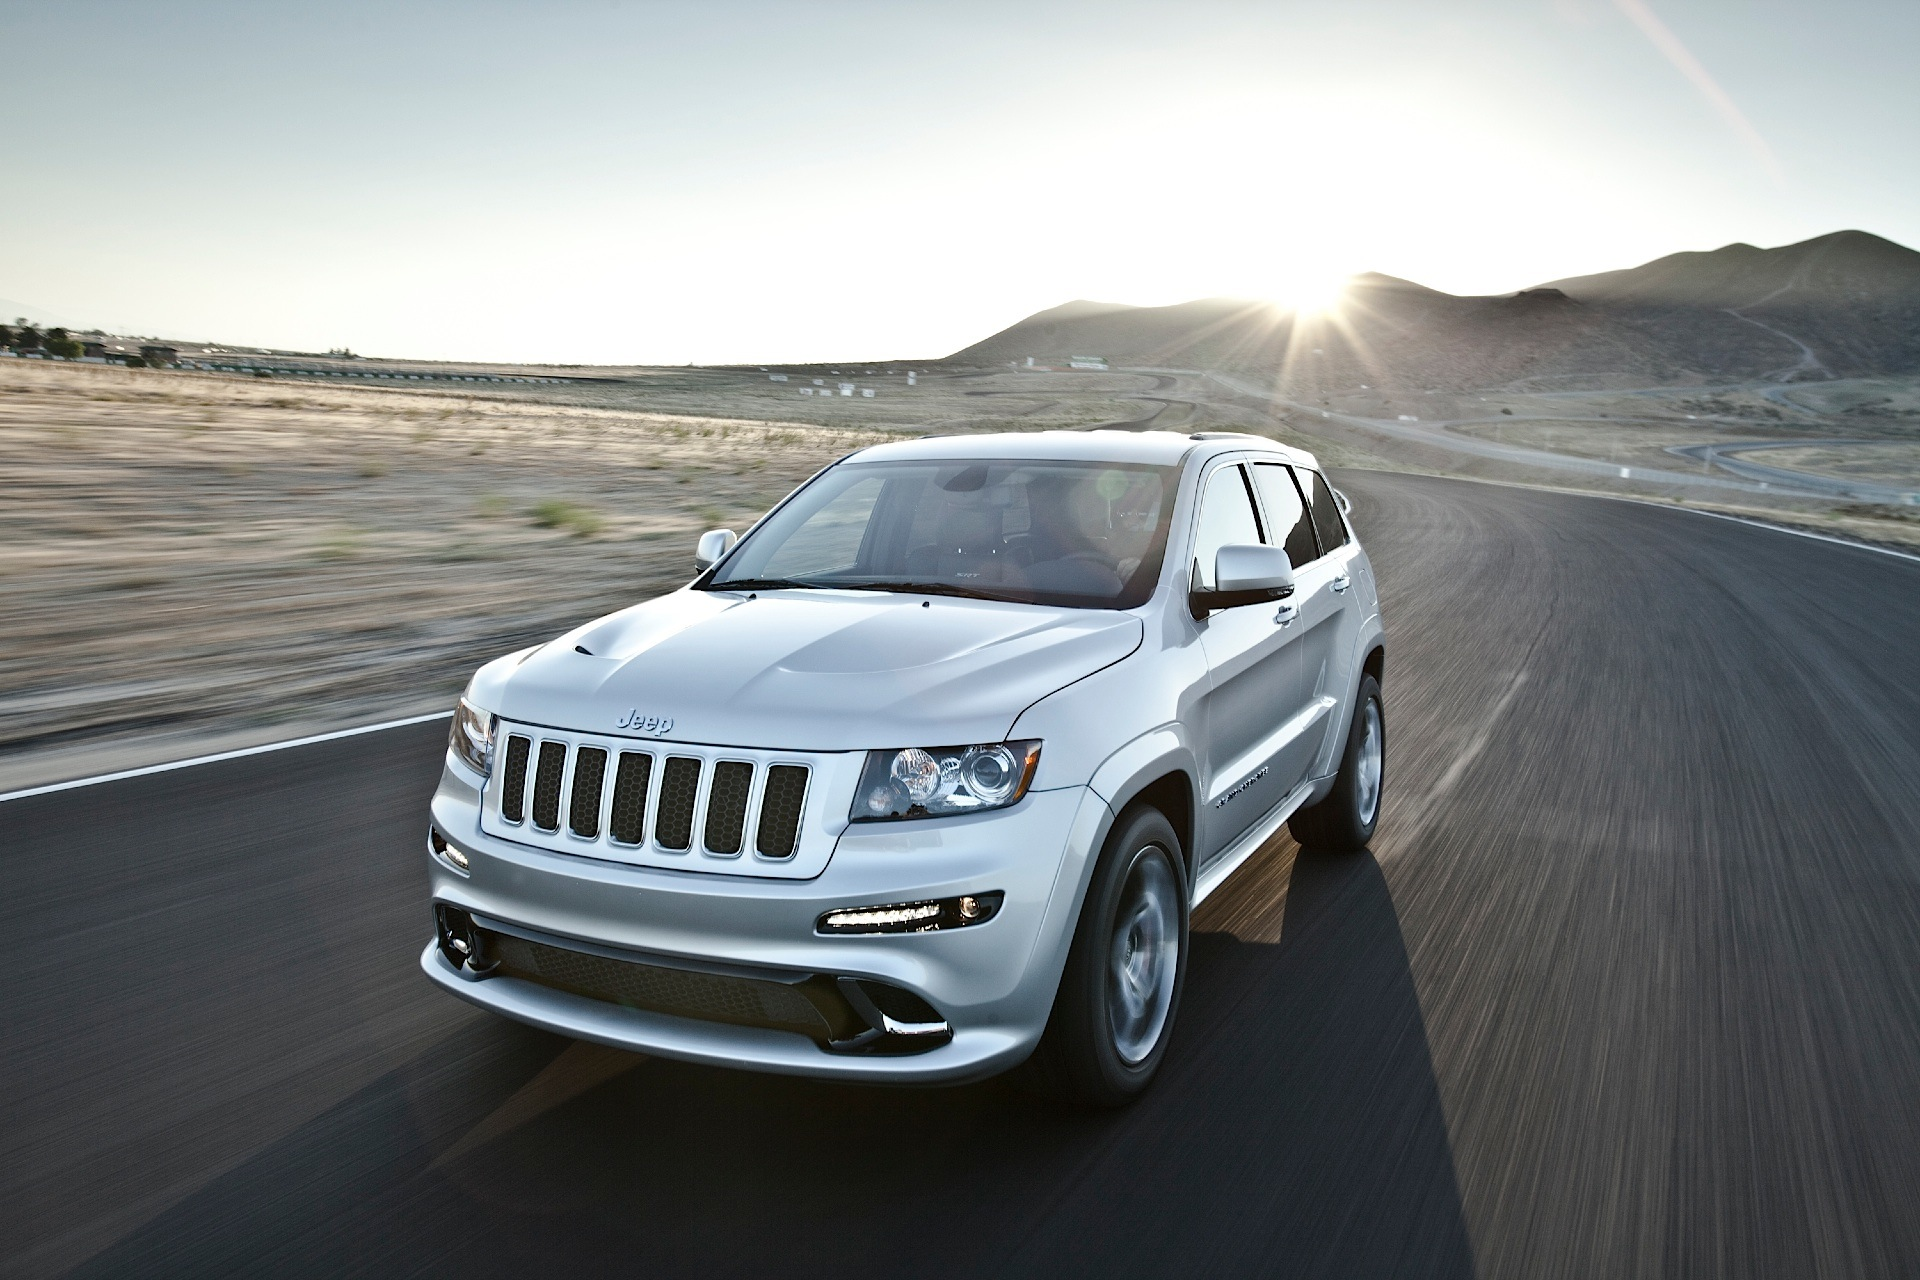 JEEP Grand Cherokee SRT-8 - 2012, 2013, 2014 - autoevolution